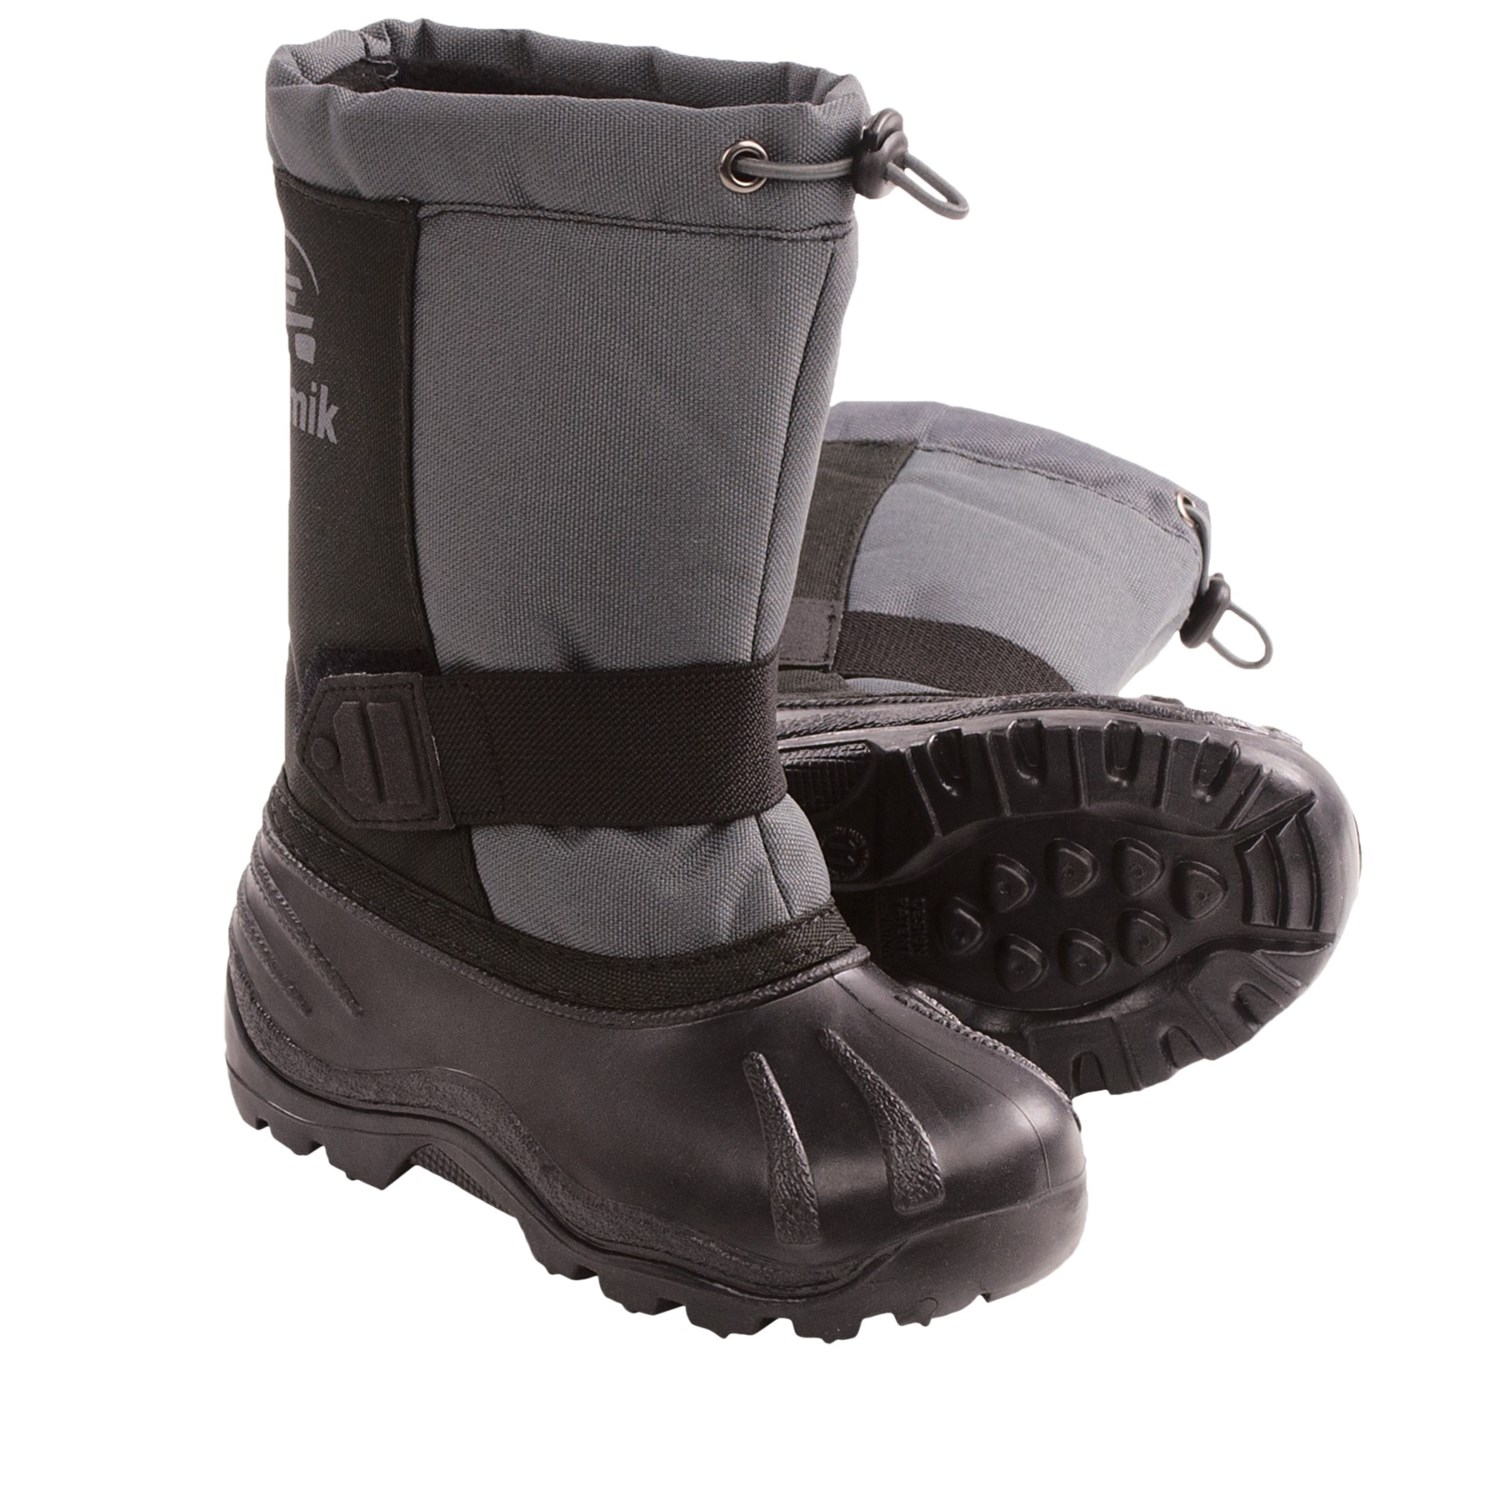 Winter Boots For Kids Kamik fireball4 winter boots - waterproof (for ...